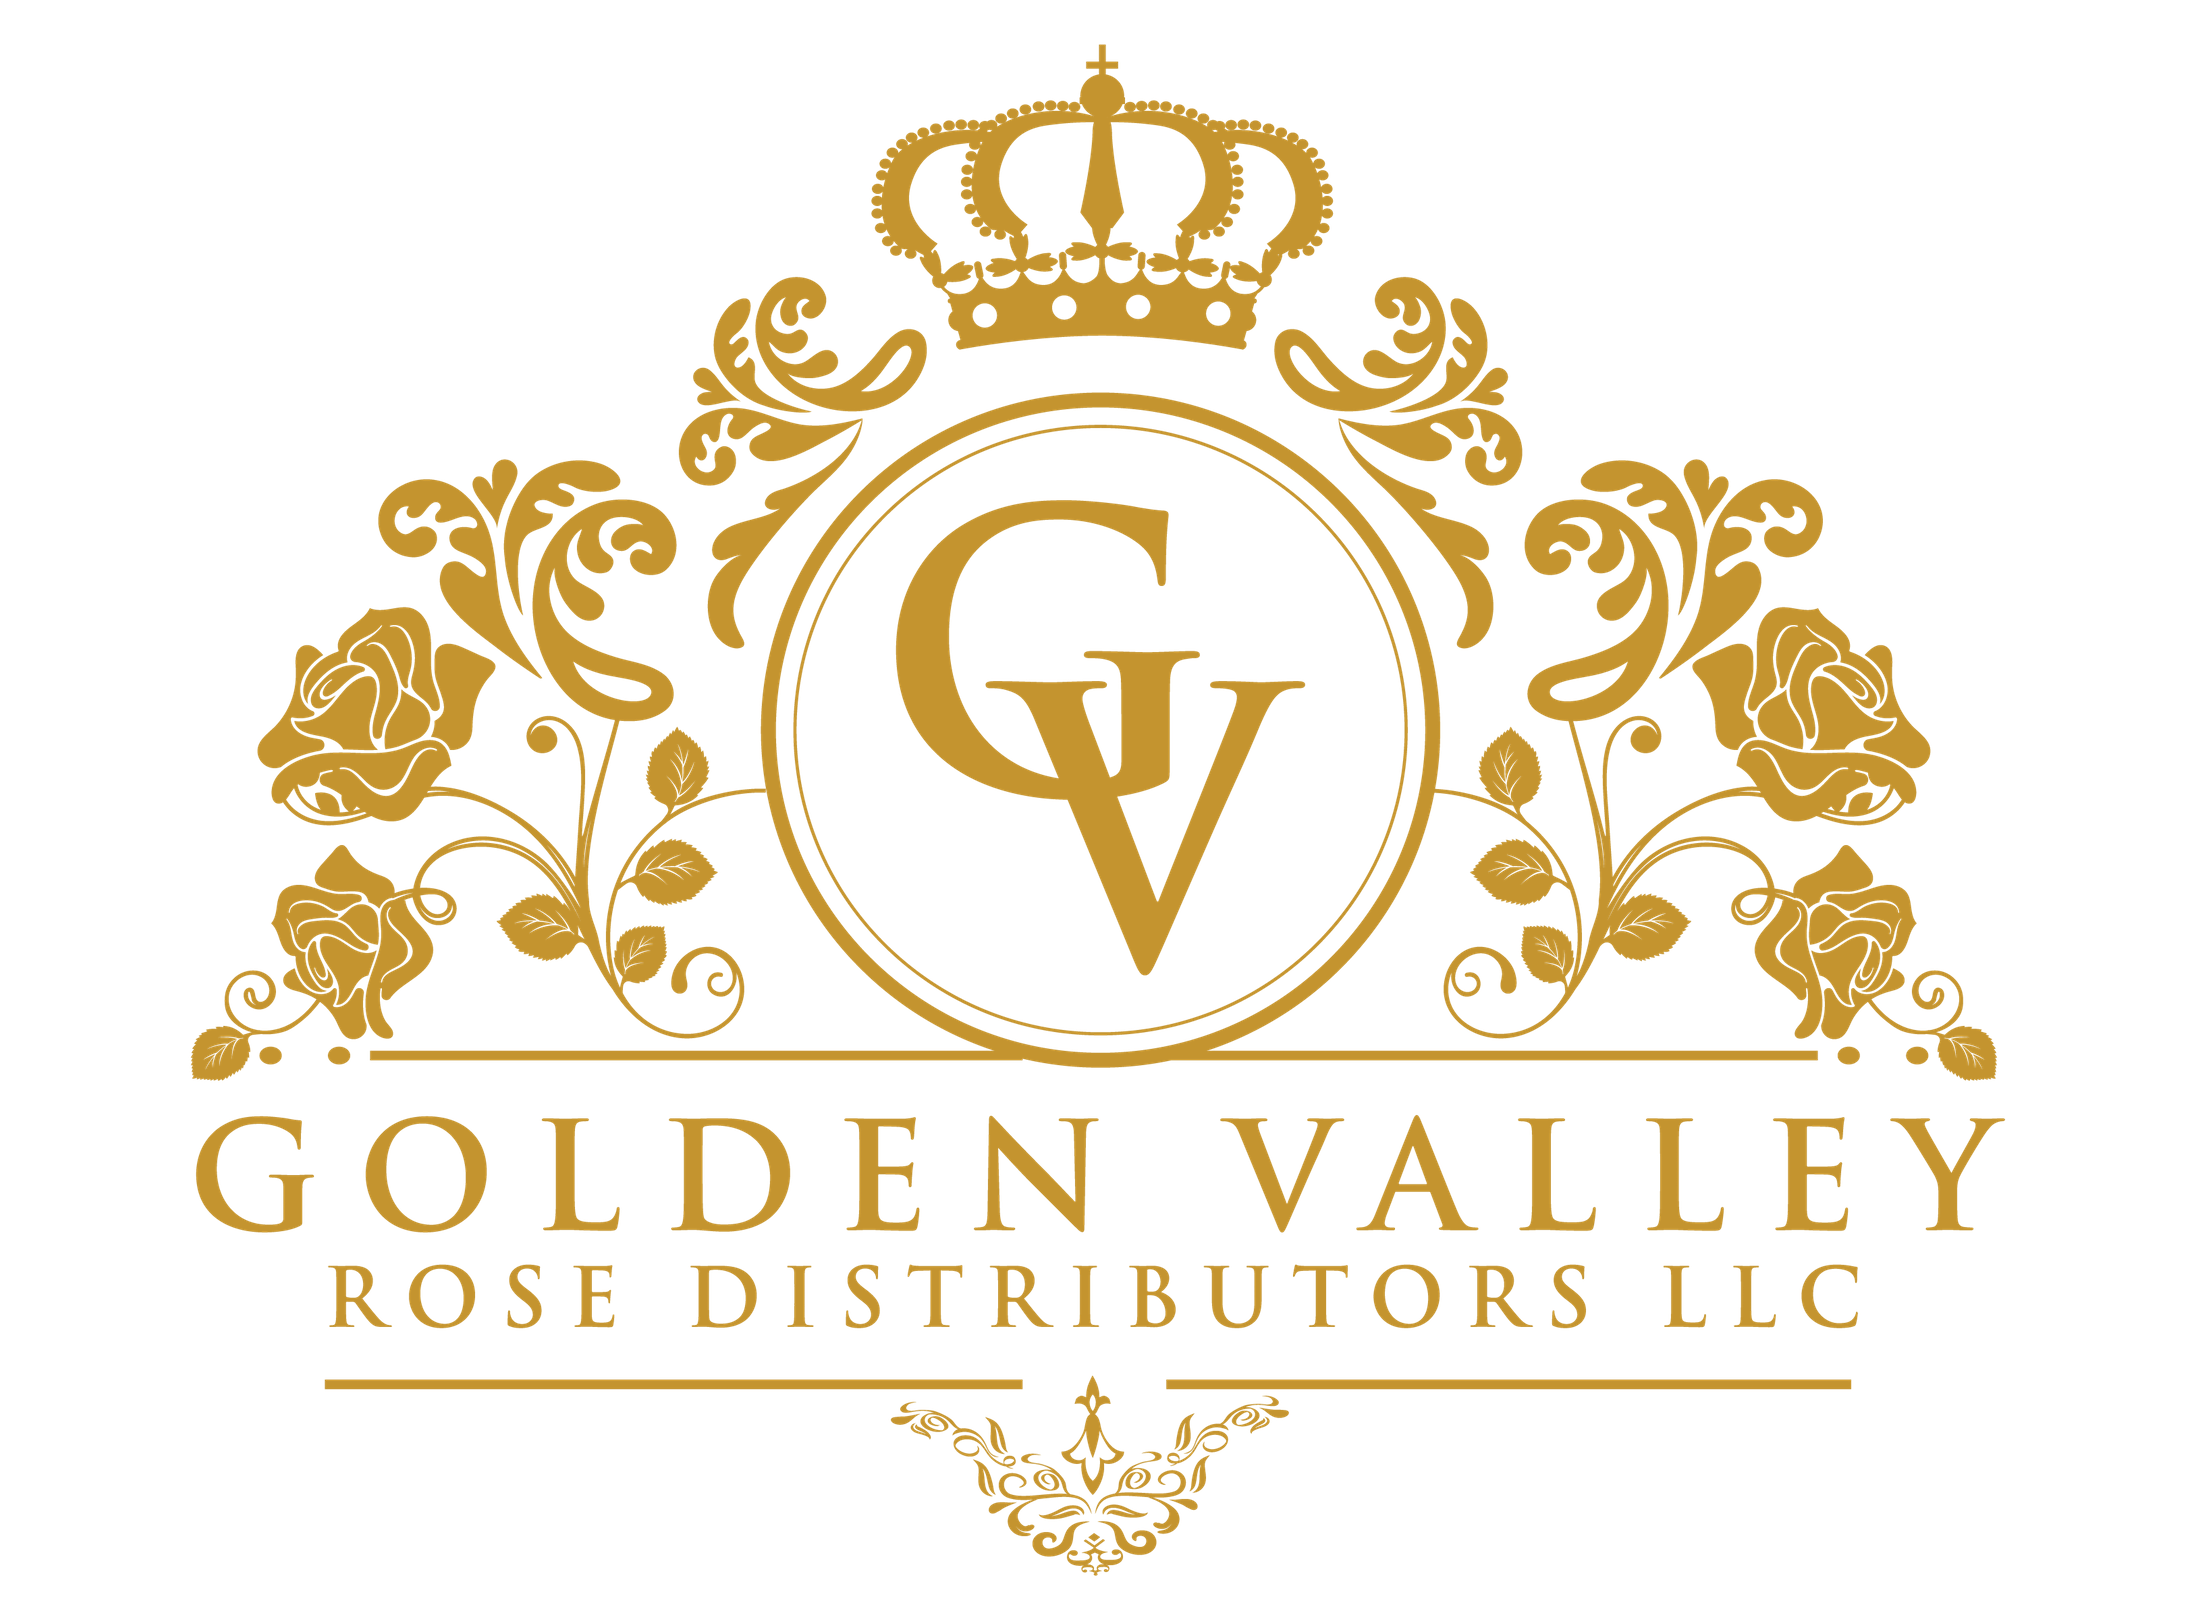 Golden Valley Rose Distributors LLC